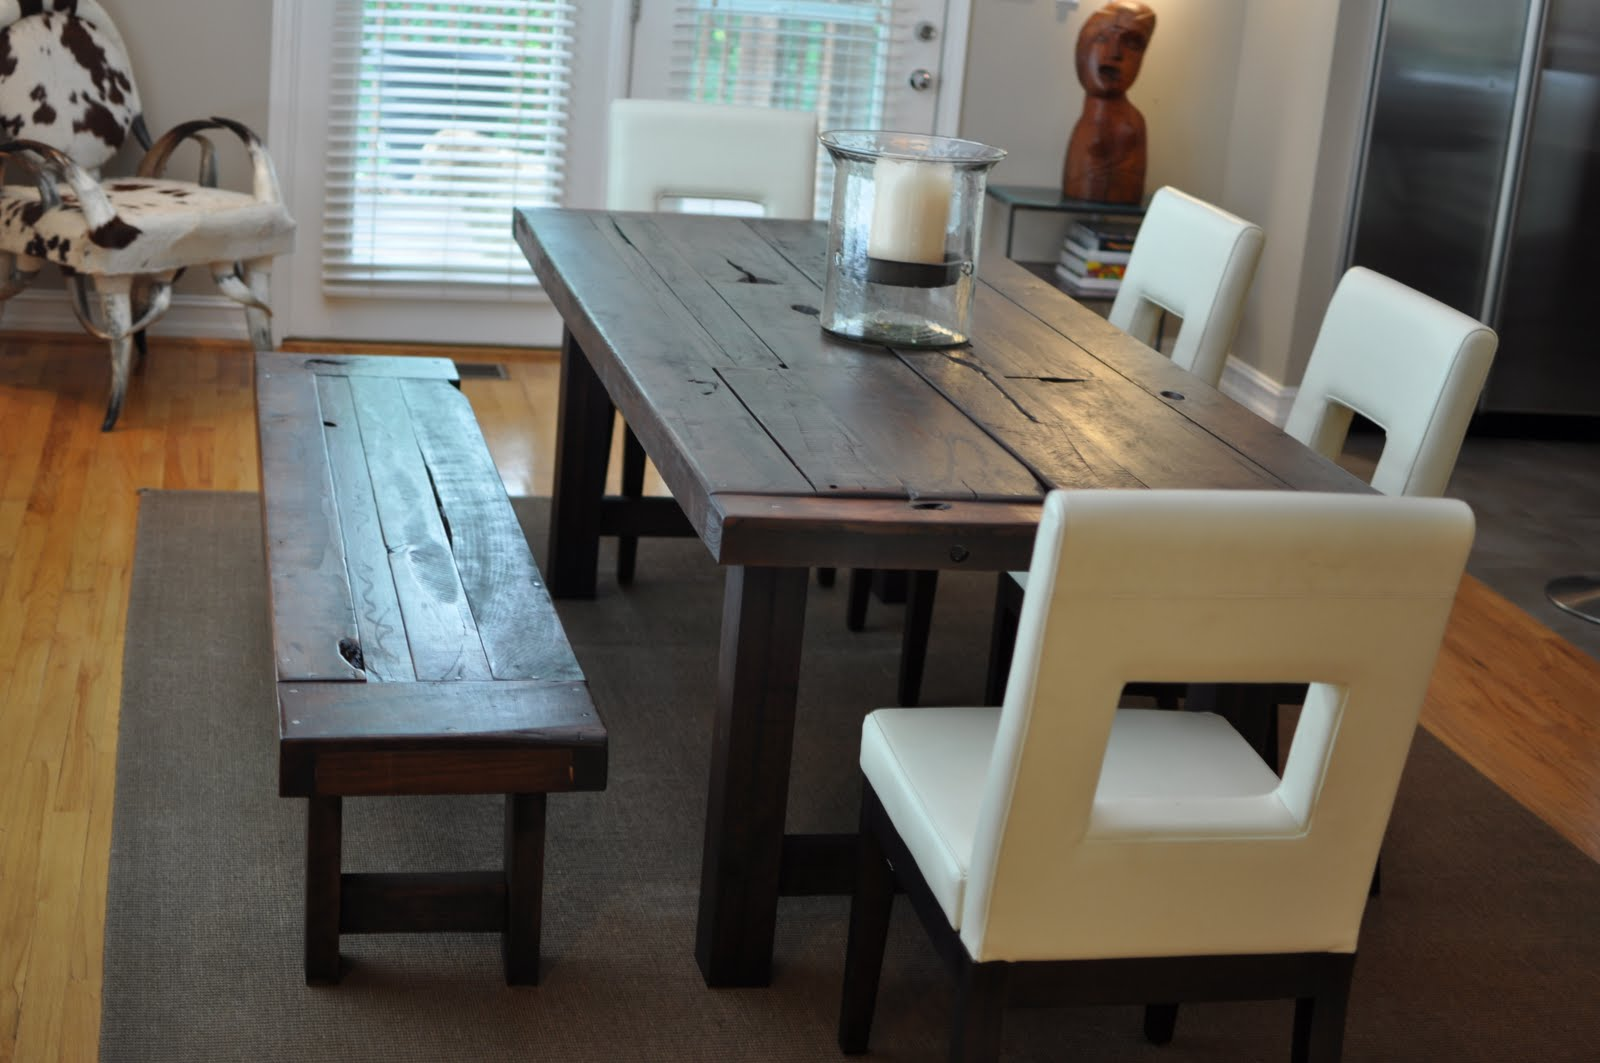 Rustic Dining Room Tables With Bench modern rustic dining chairs - creditrestore